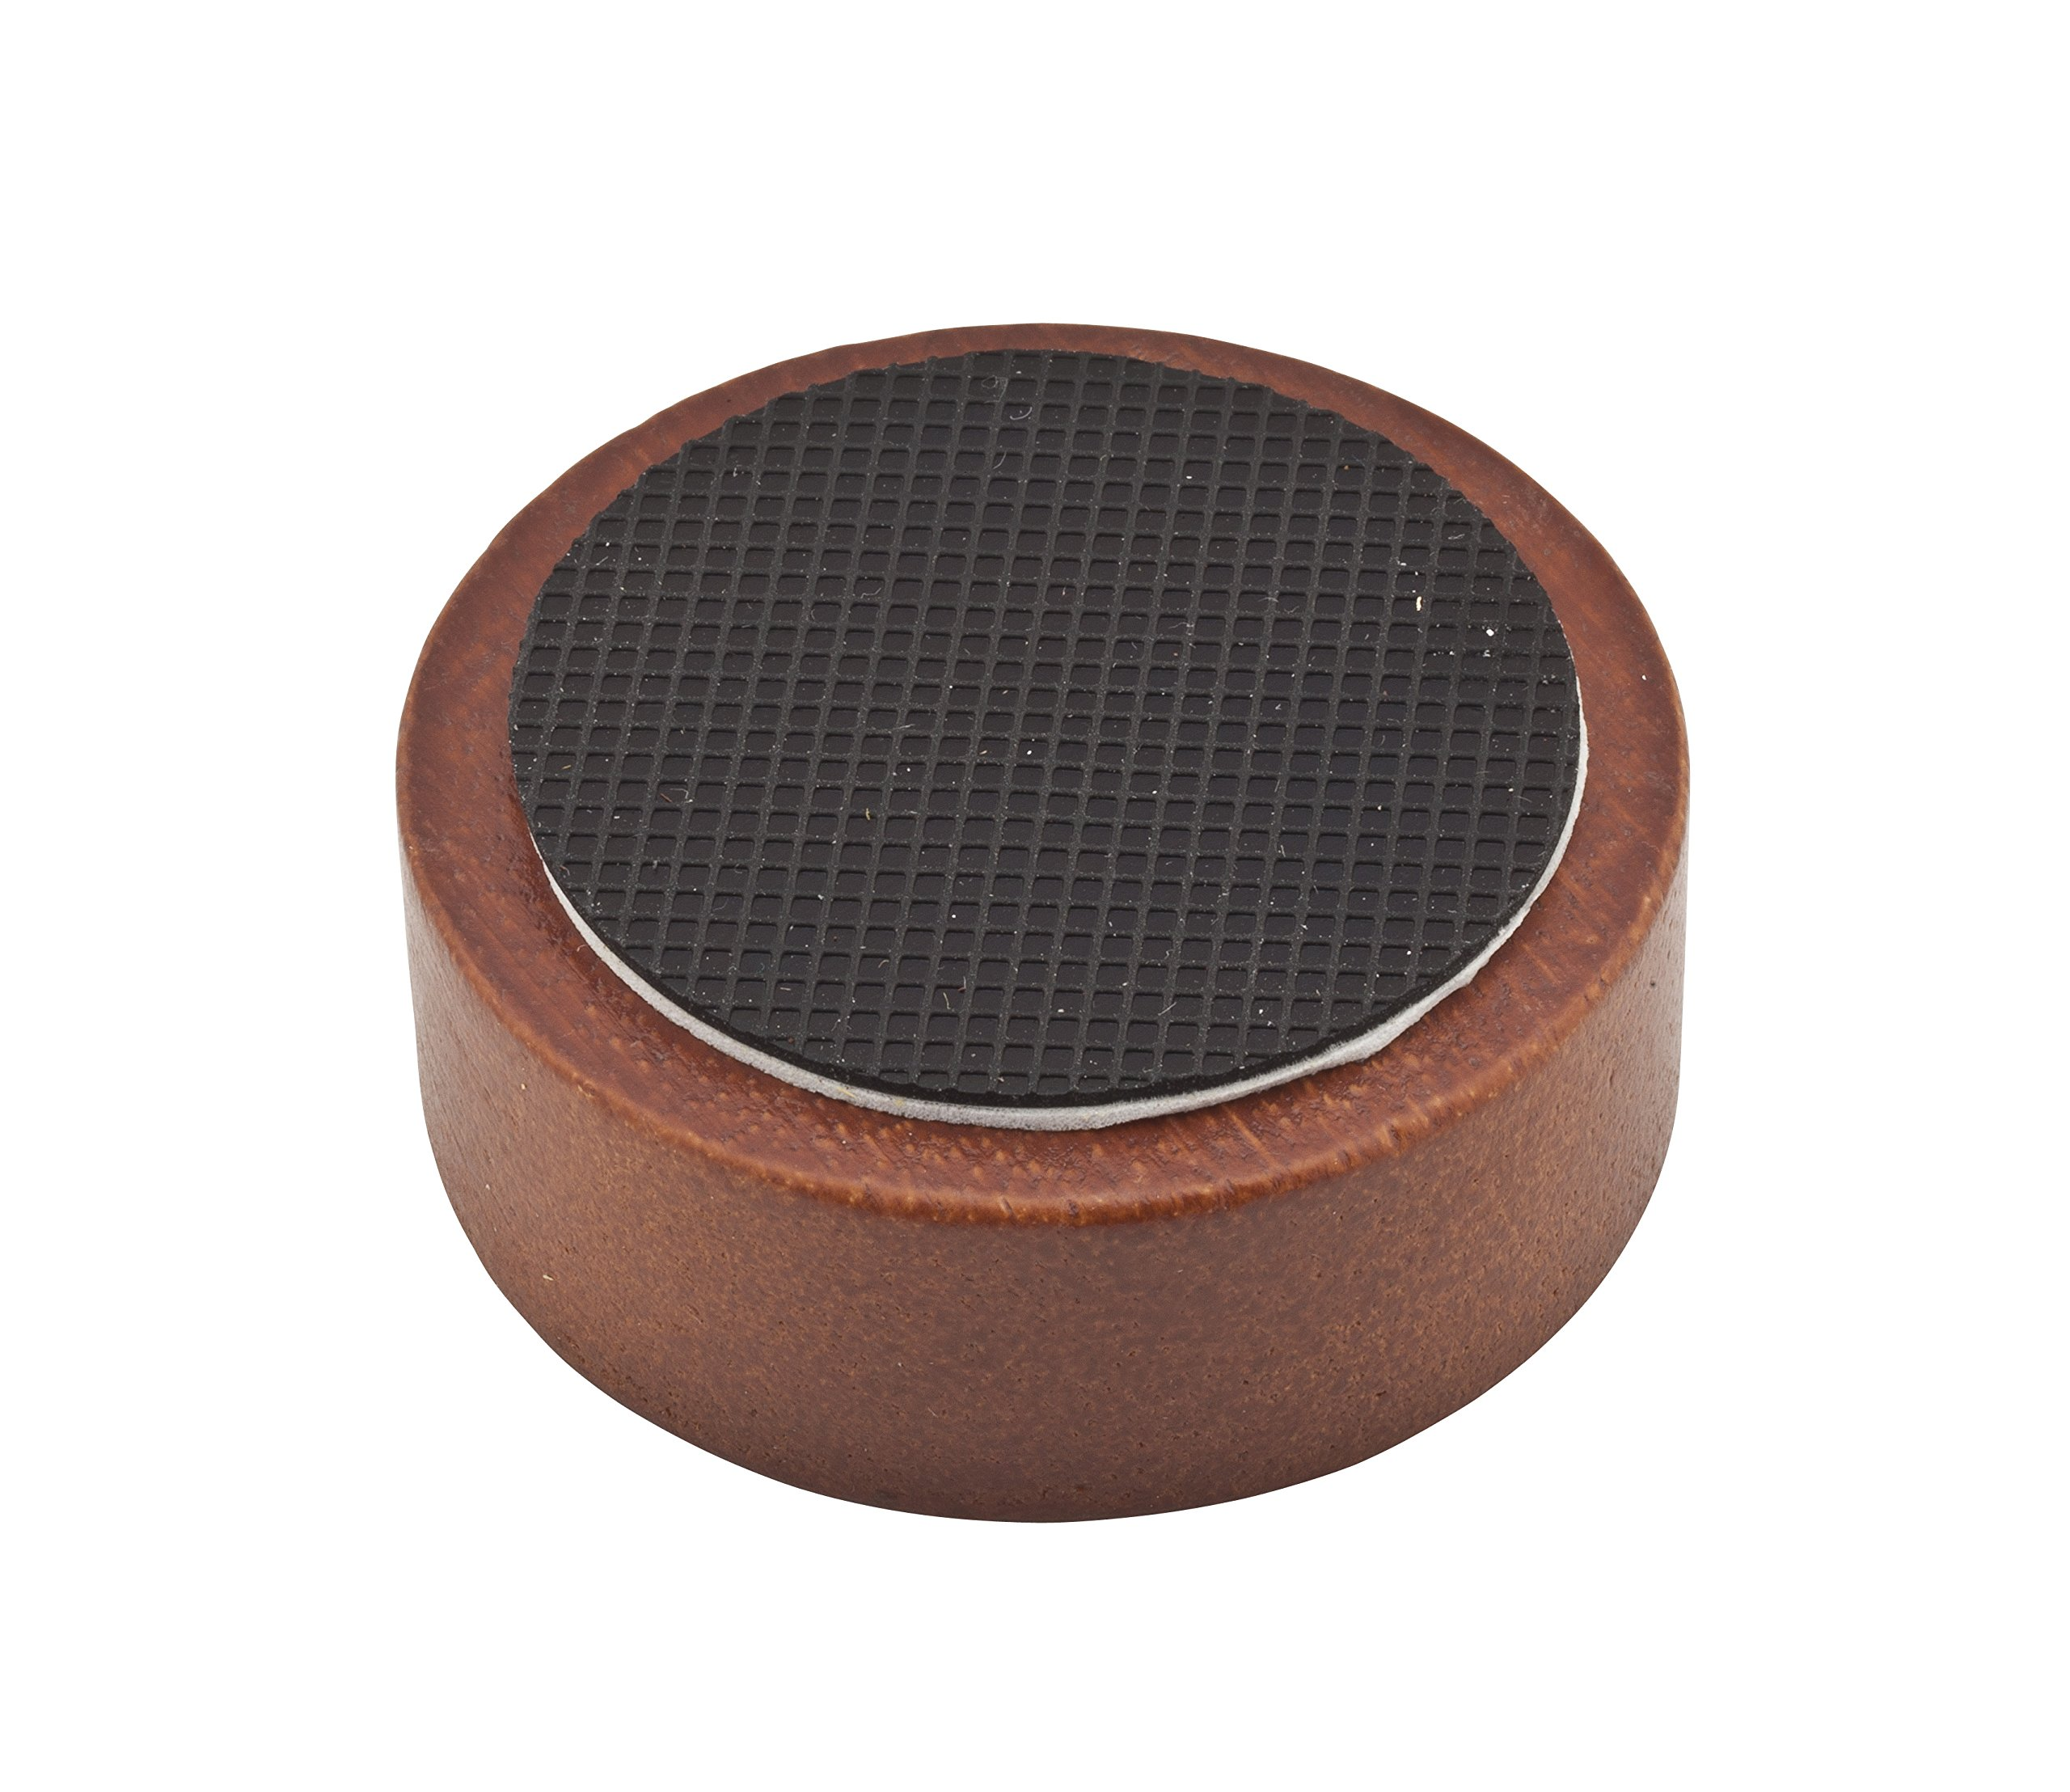 Stanley Hardware S845-671 V1727 Woodgrain Grip Caster Cups in Brown, 1-11/16'', 4 piece